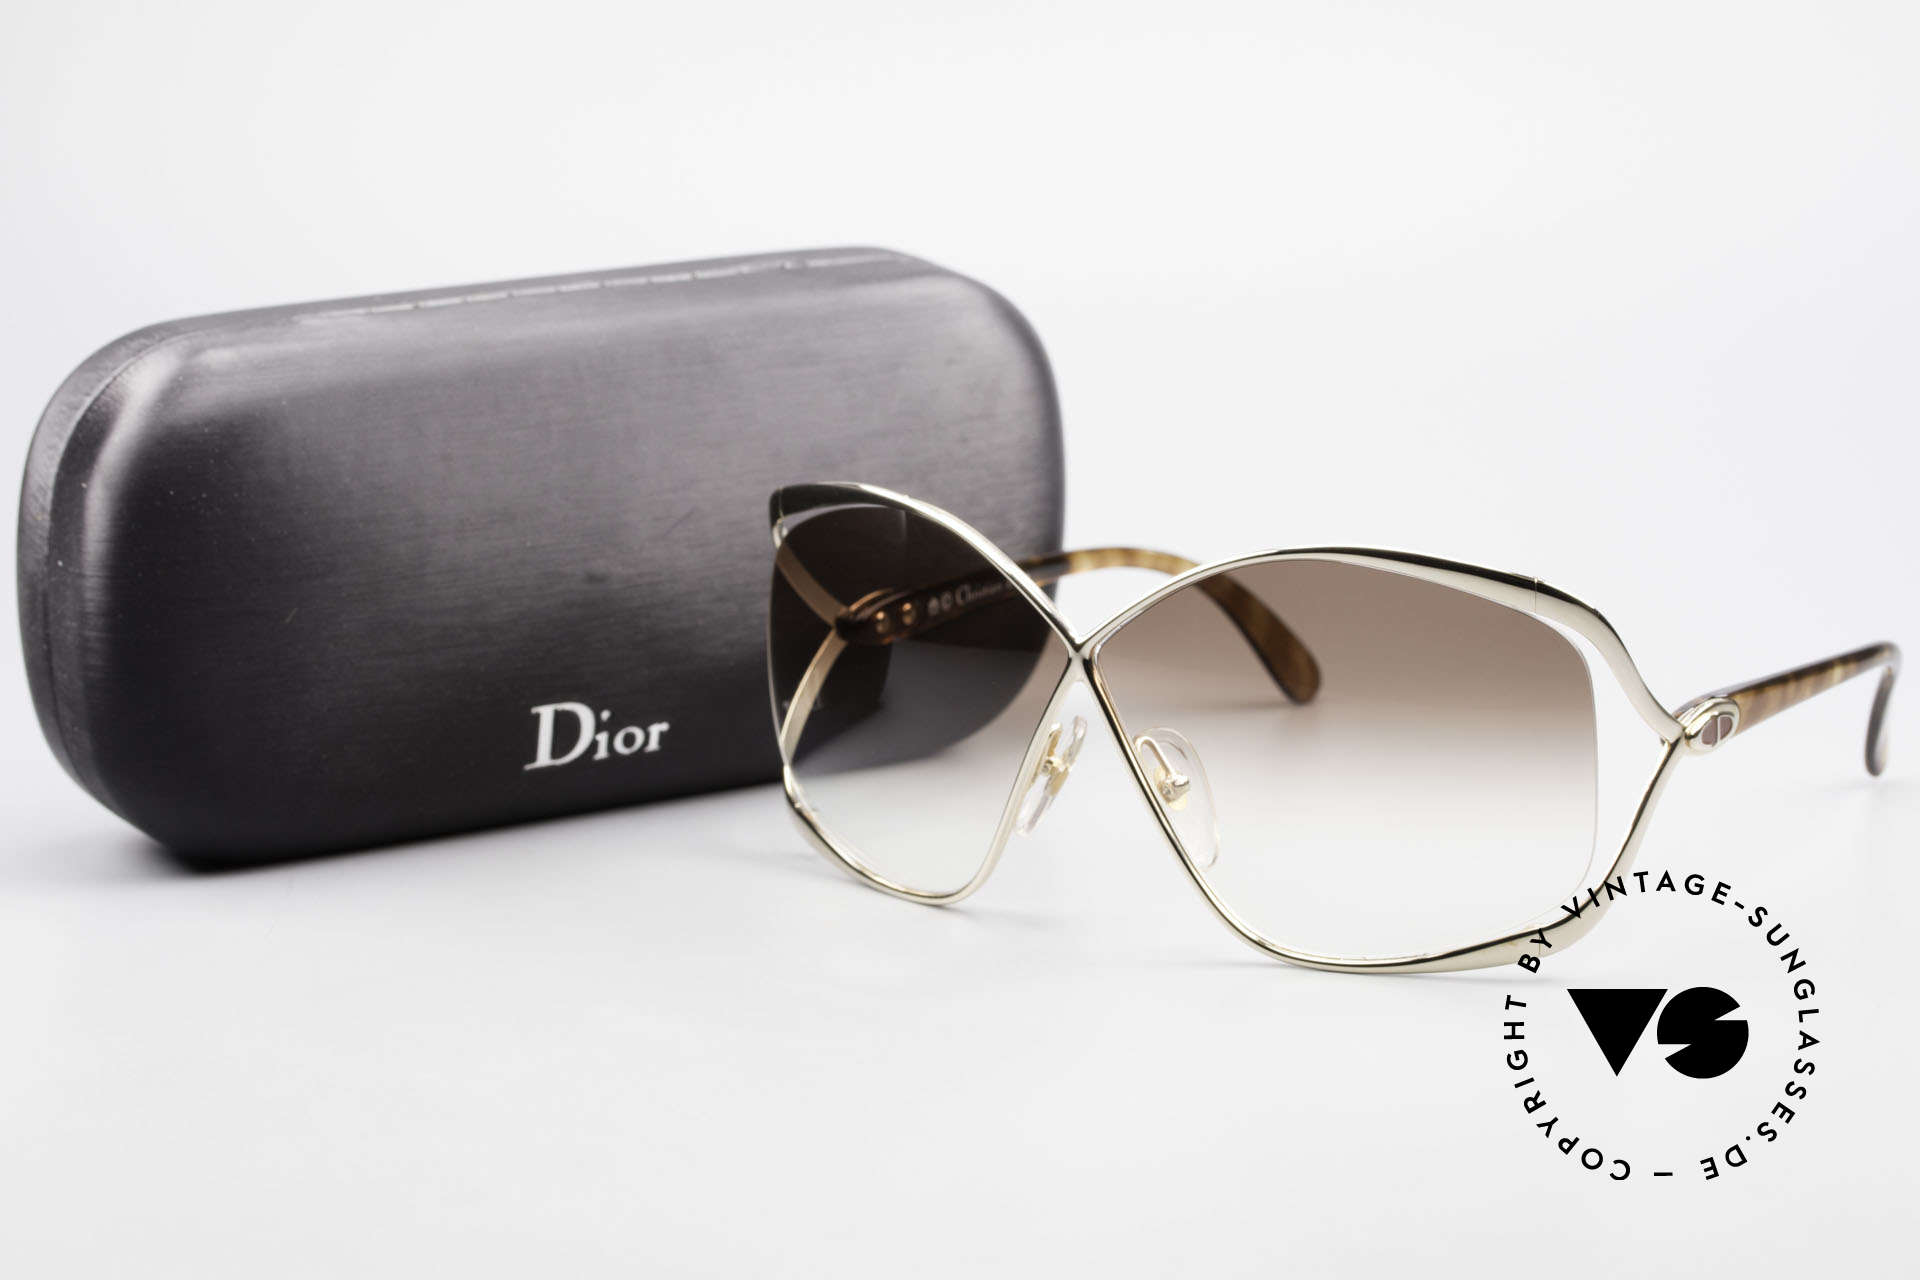 Christian Dior 2056 80's Butterfly Sunglasses, Size: medium, Made for Women